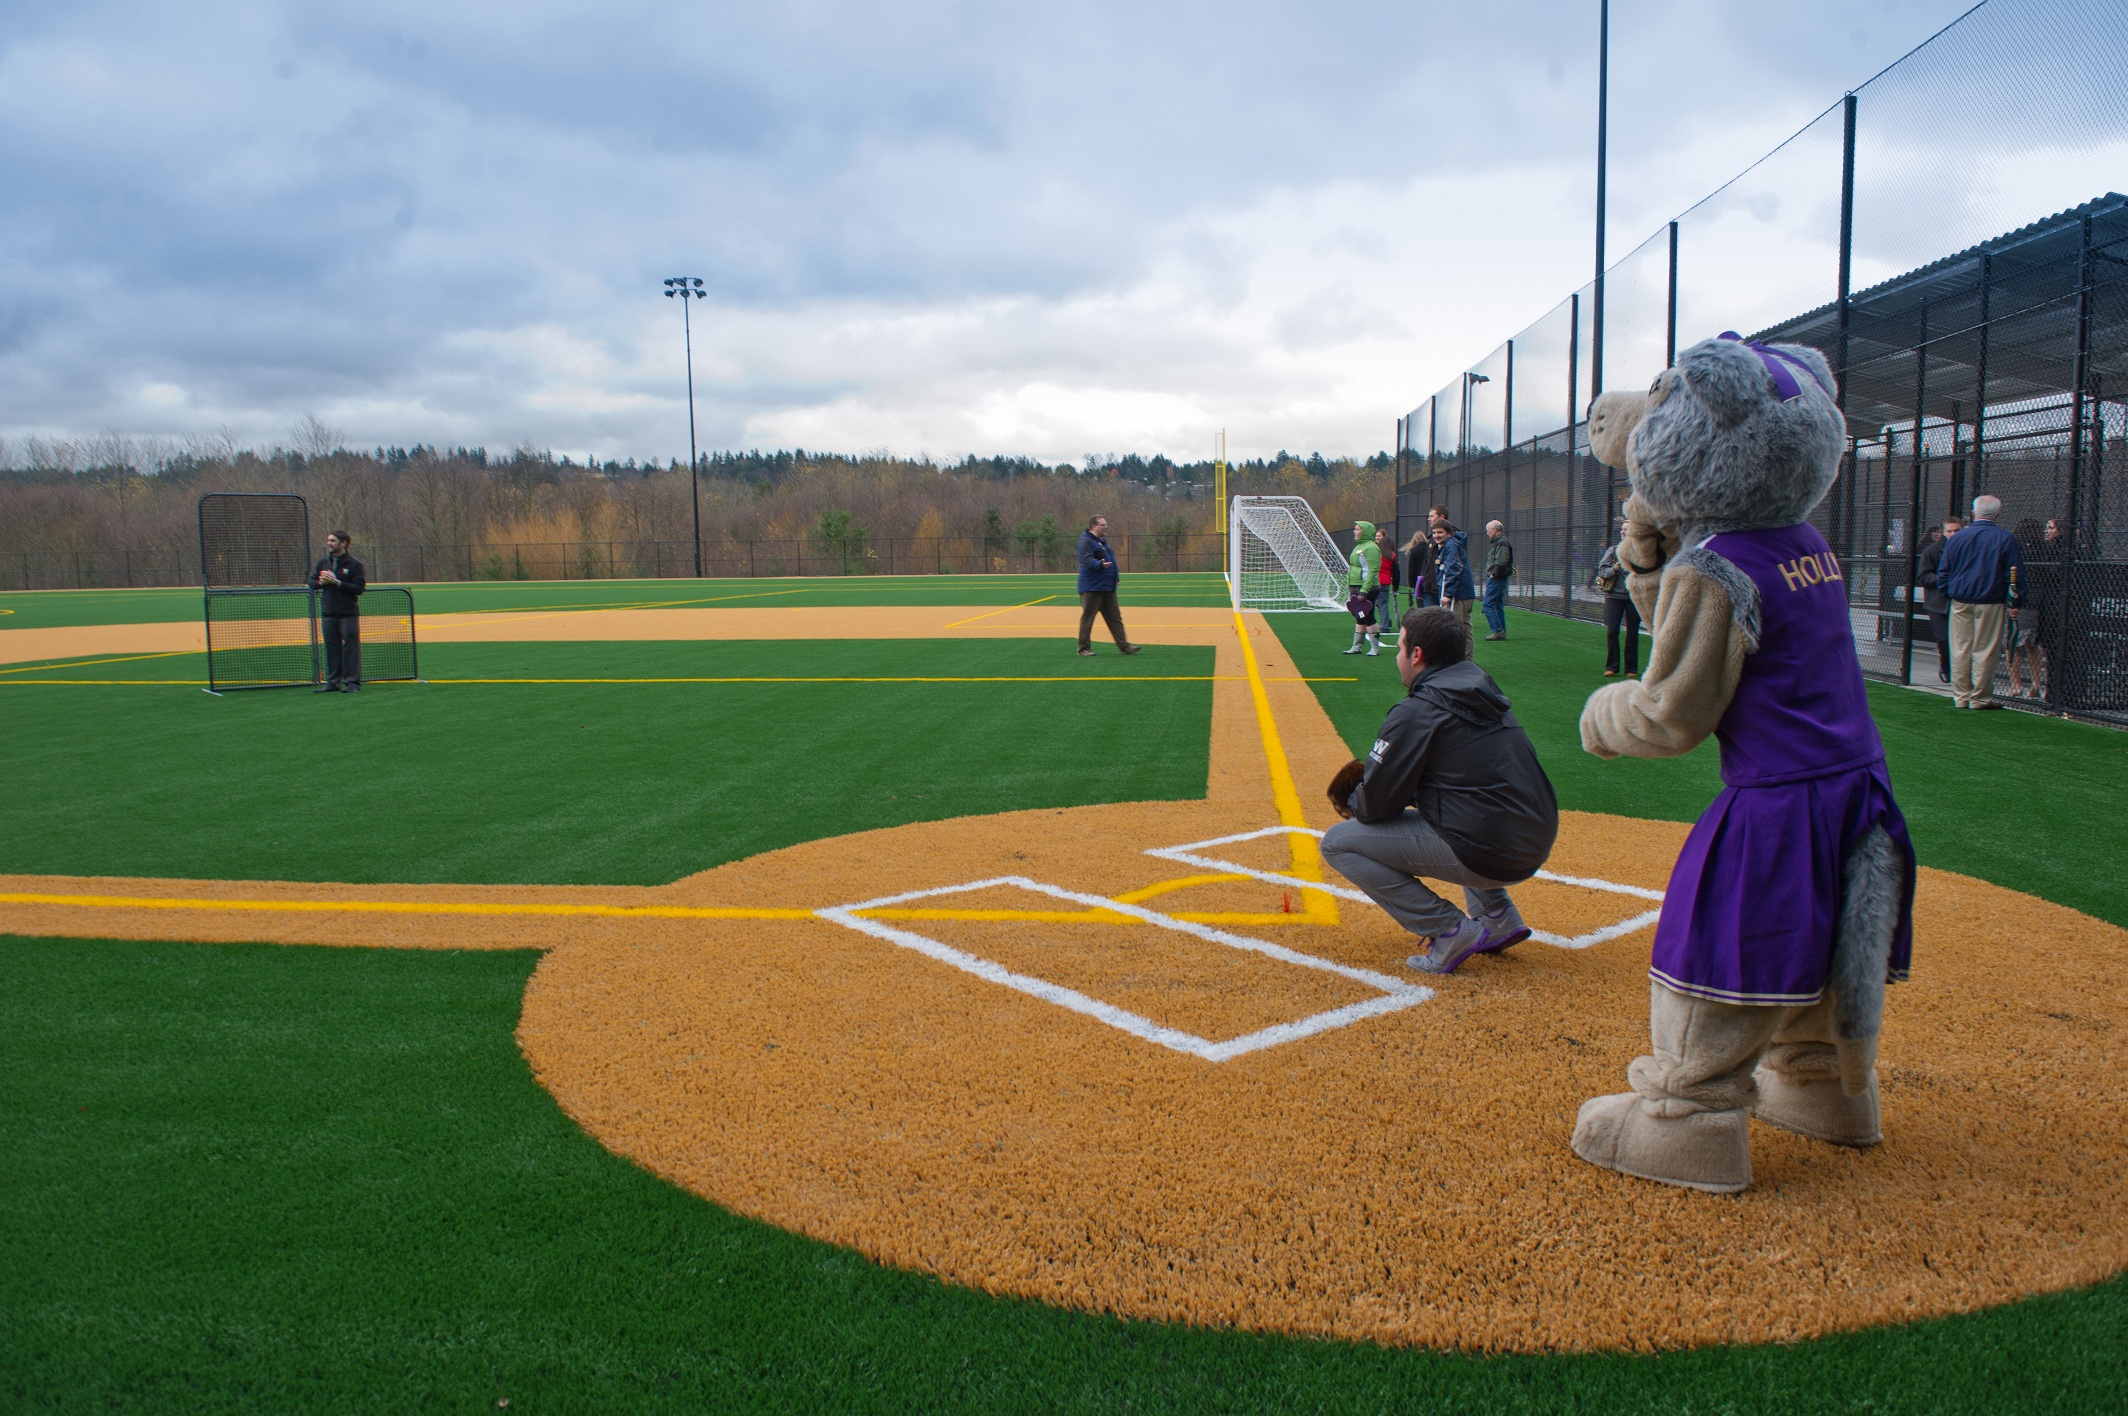 UW Bothell's Sports and Recreation Complex